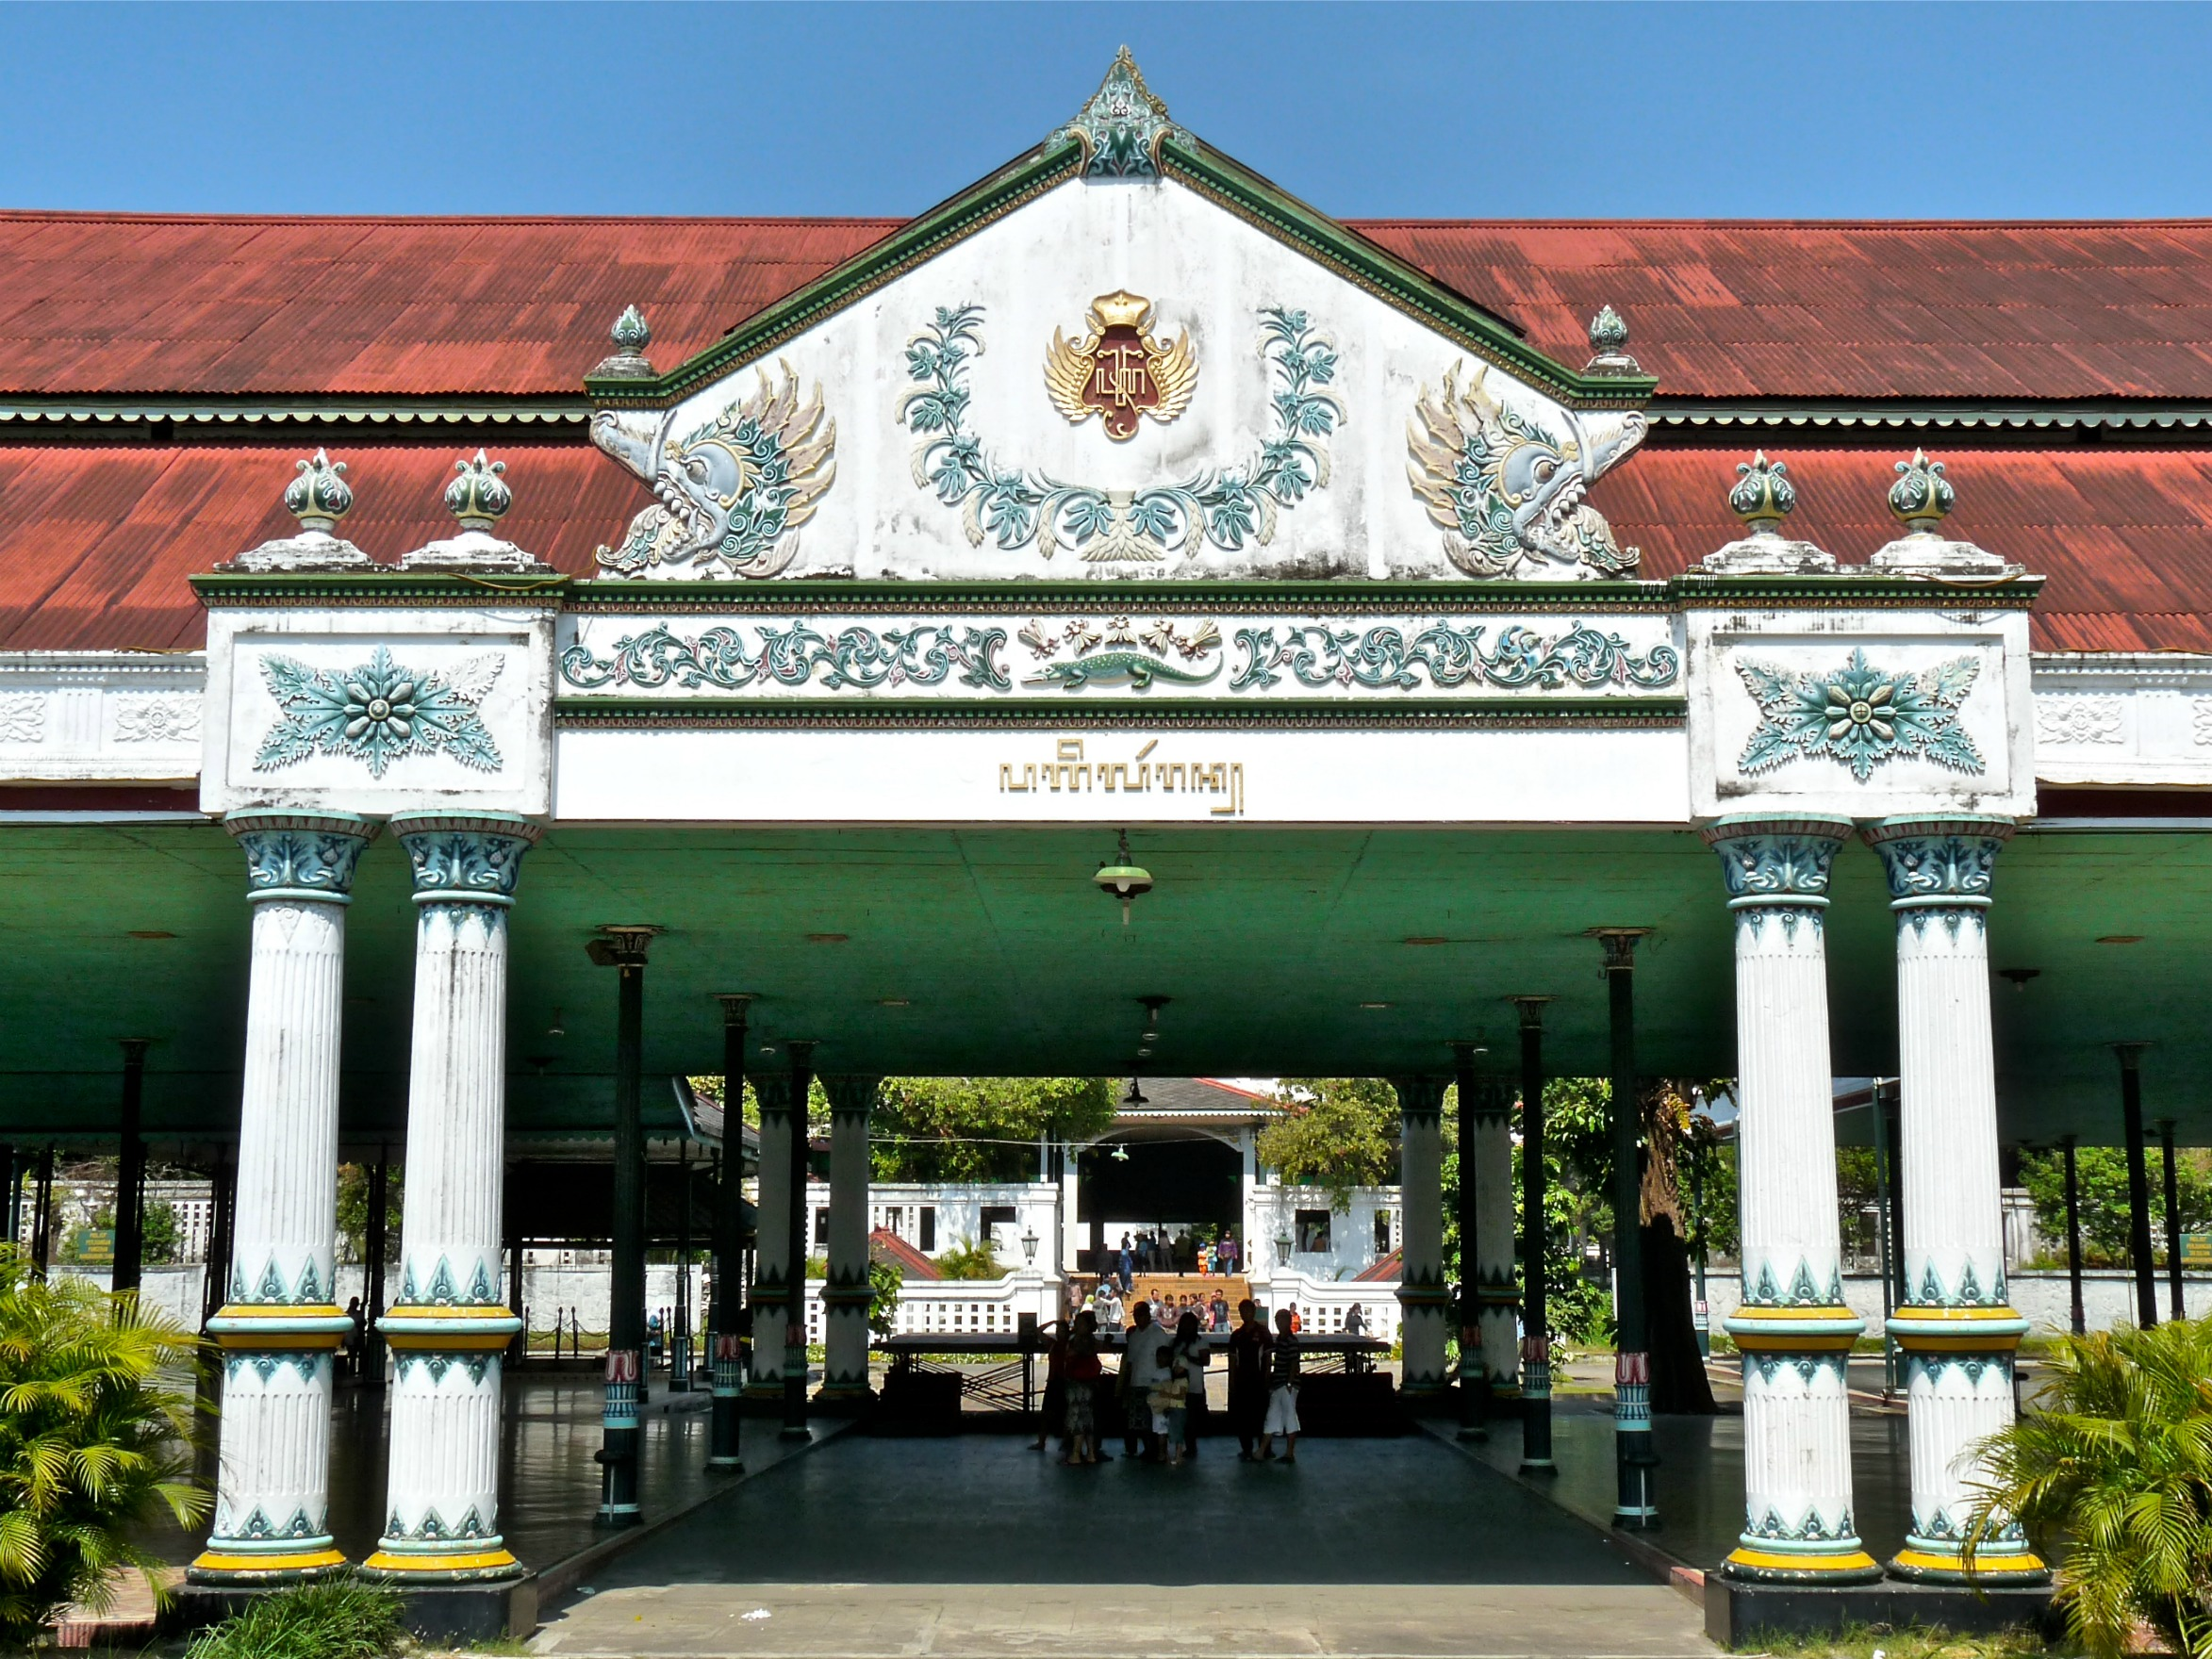 Must Visit Destinations In Yogyakarta Indonesia Glitter Wallpaper Creepypasta Choose from Our Pictures  Collections Wallpapers [x-site.ml]